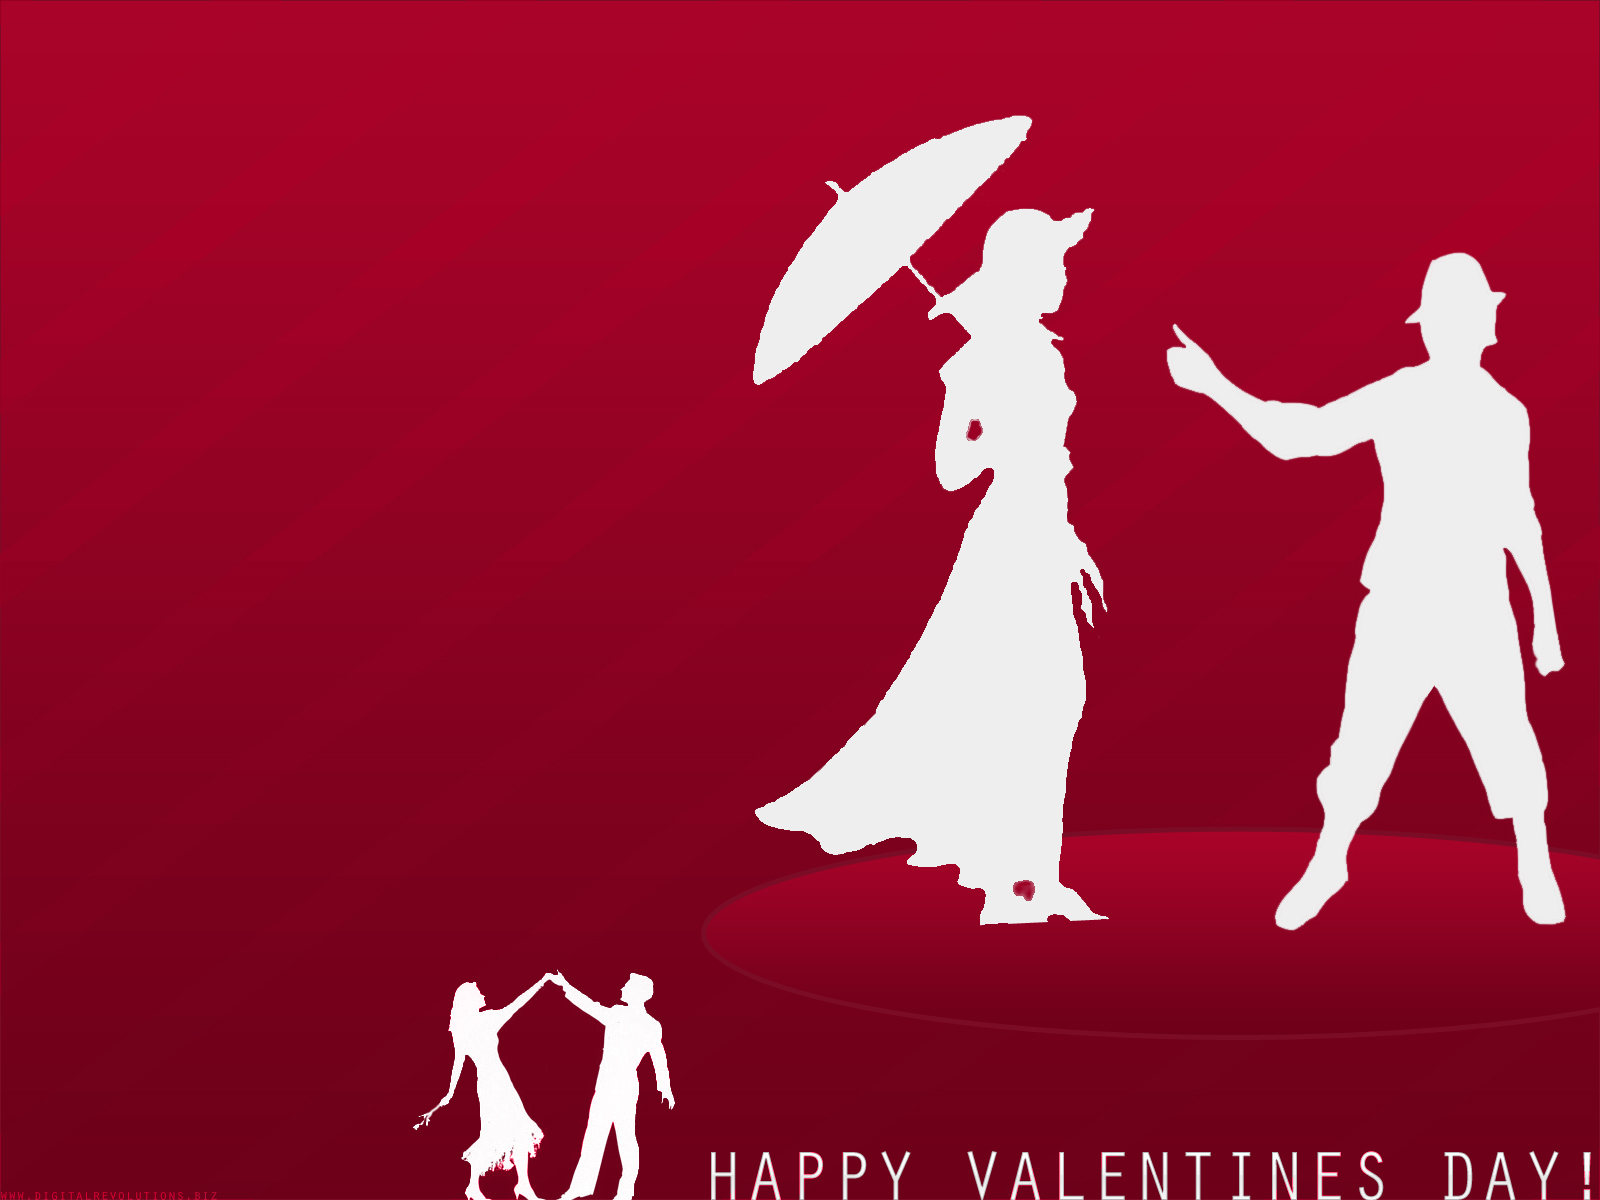 Valentine Day Wallpapers U2013 Latestsms.in